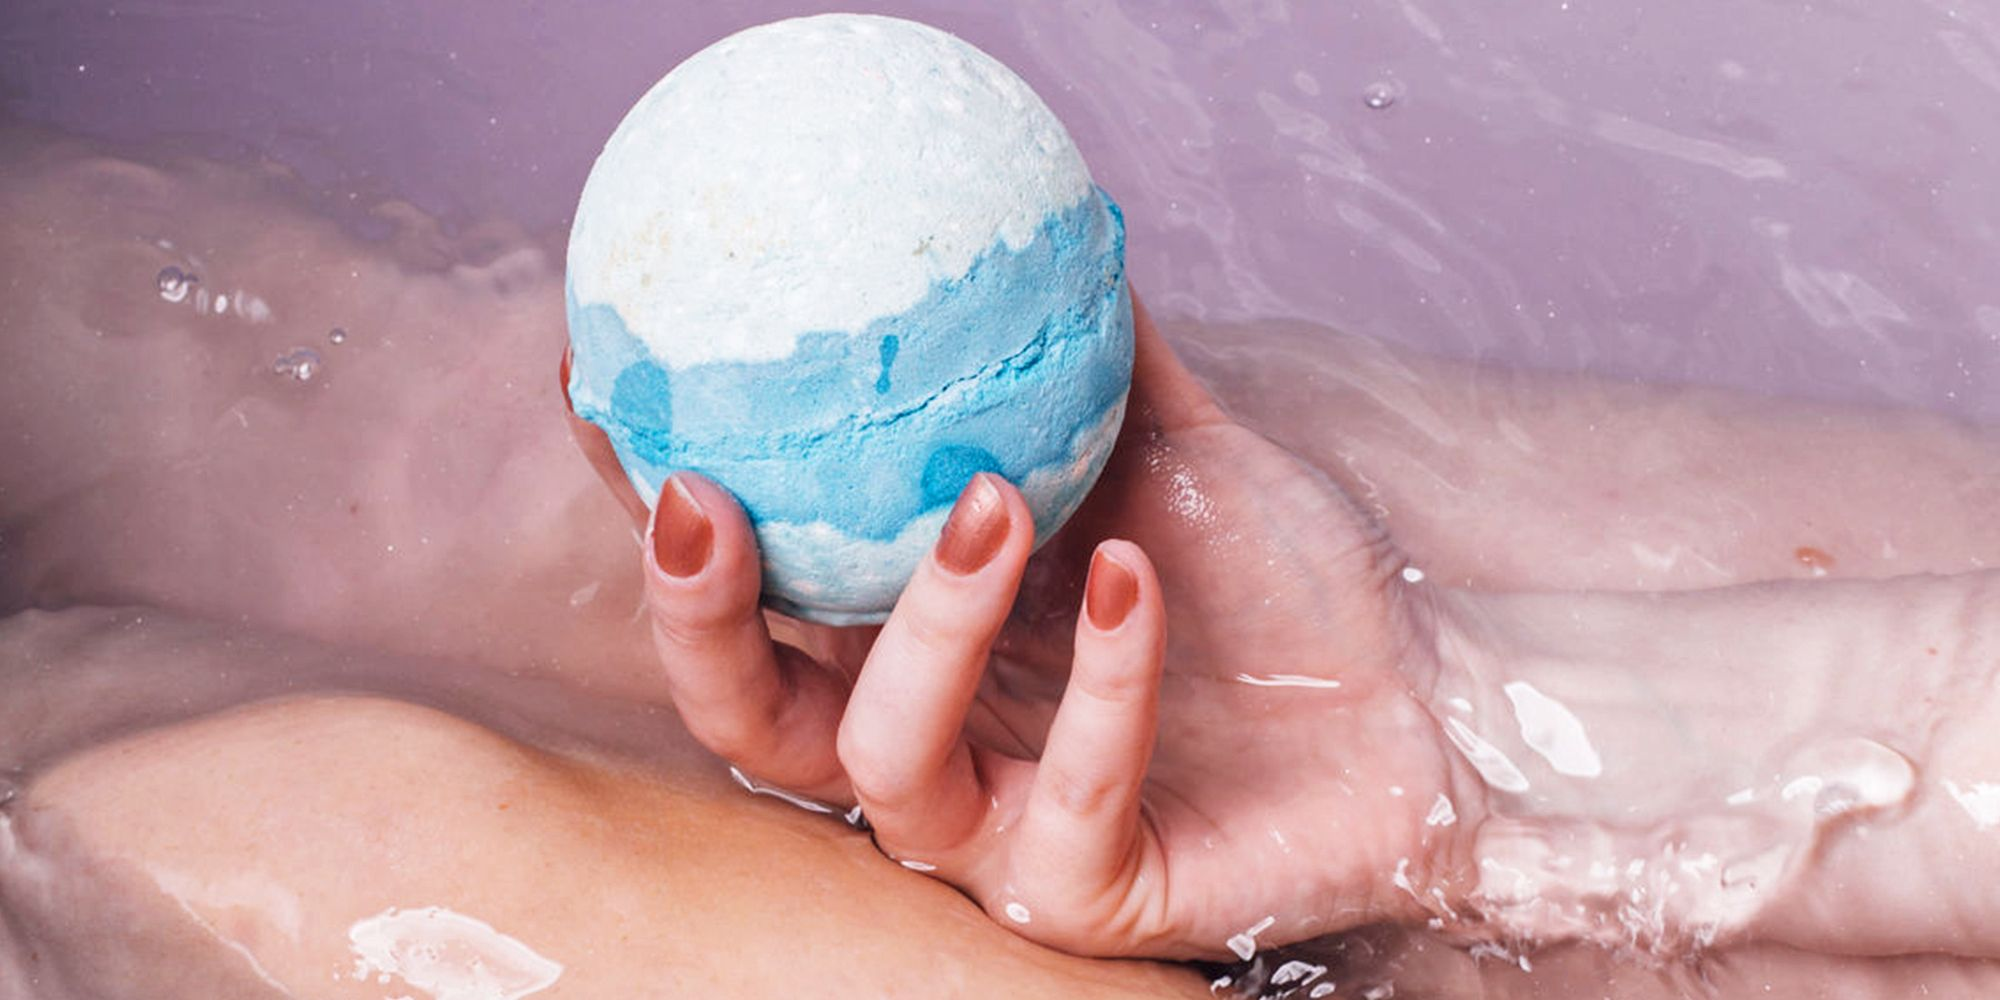 This Cbd Bath Bomb Is Going Viral For Curing Muscle Aches And Pains